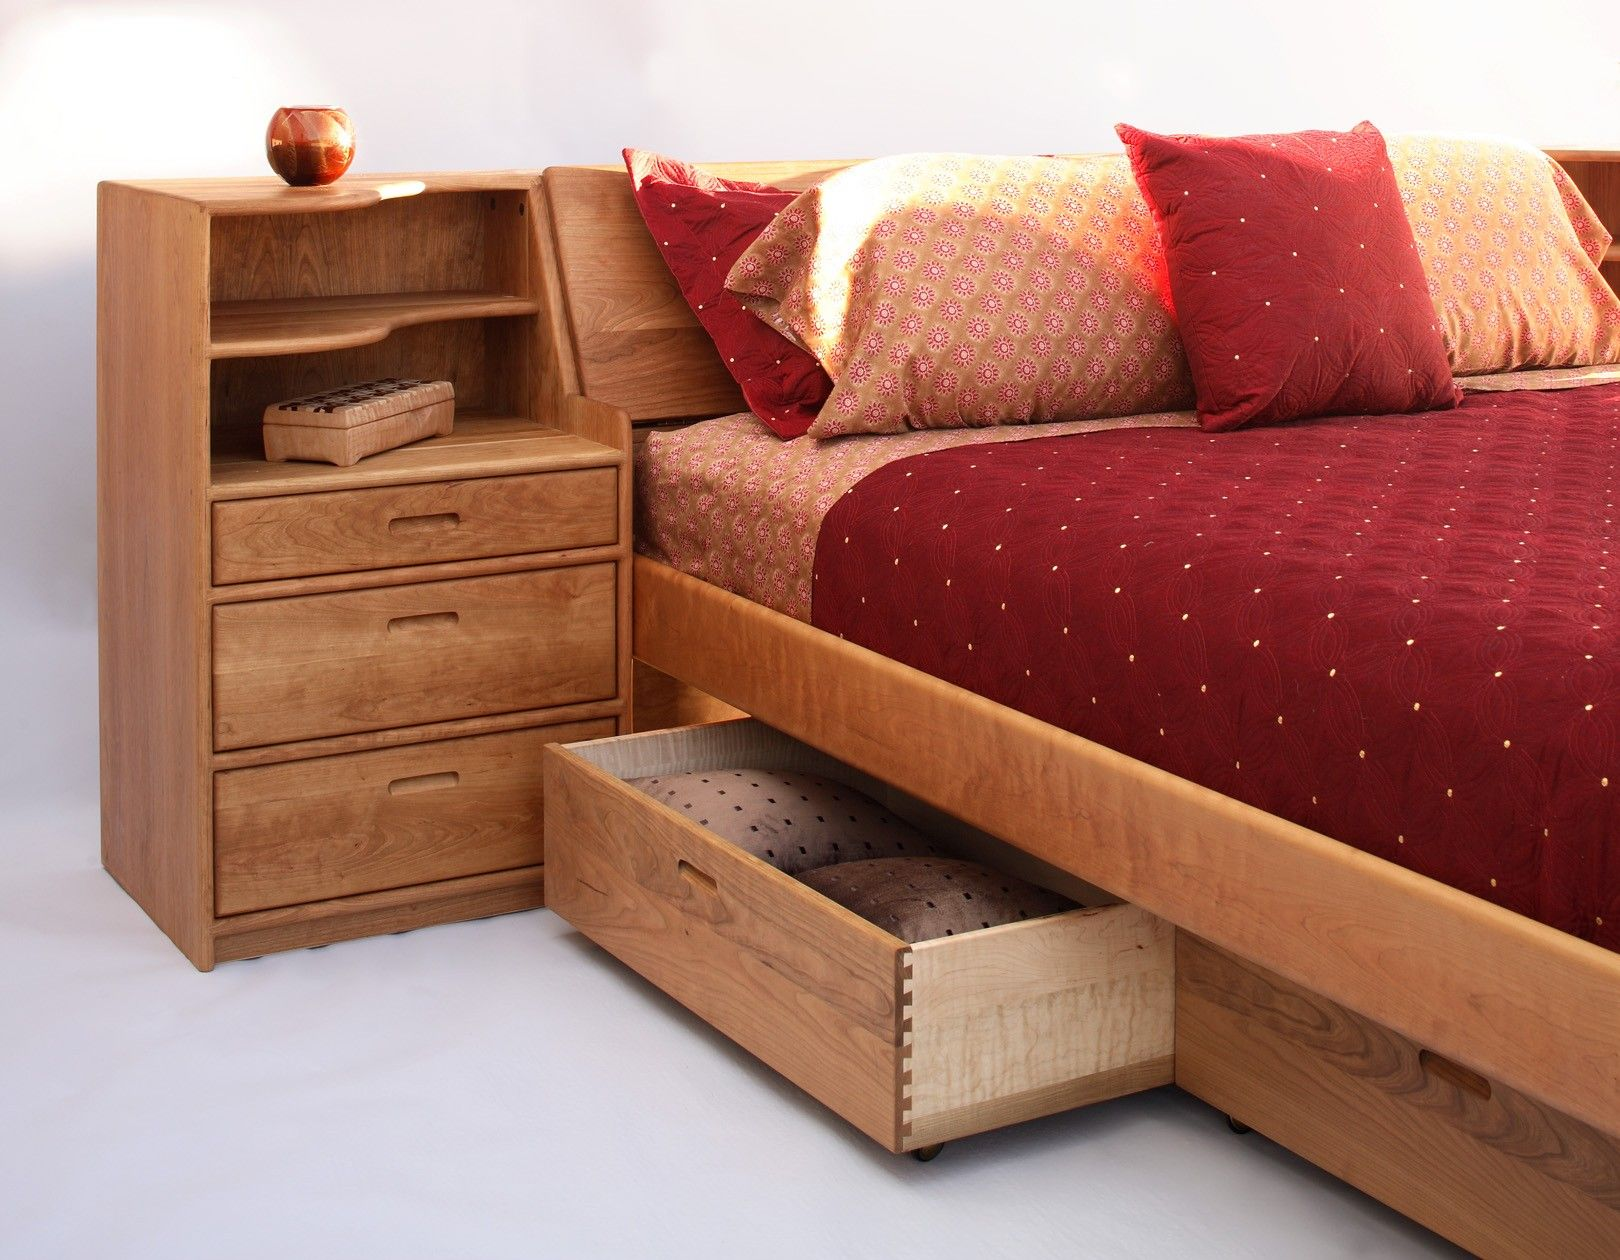 Platform Pedestal Bed With Slope Headboard And Nightstands In Cherry With Images Headboard Storage Bed Bed Storage Drawers